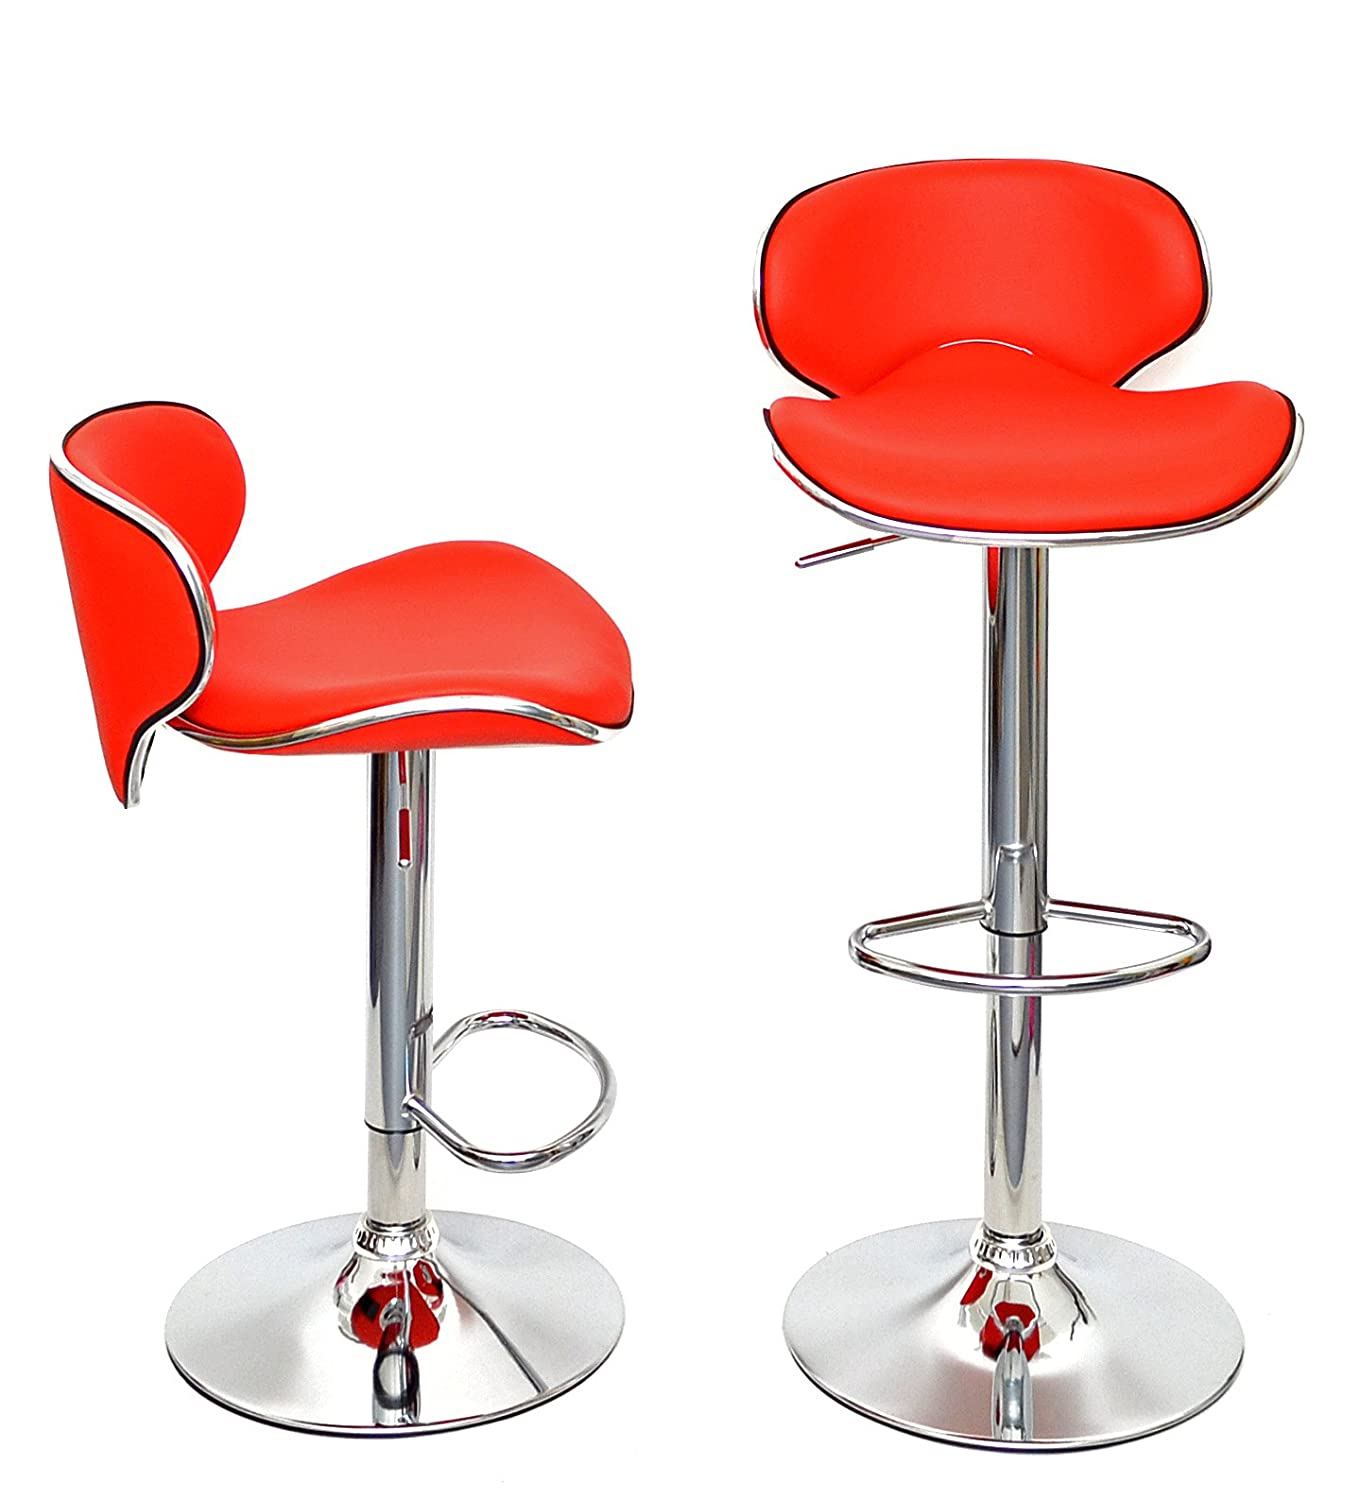 stools with imagination metal cheap photos bar stool tall splendid leather most industrial outdoor red white elegant counter arms inch